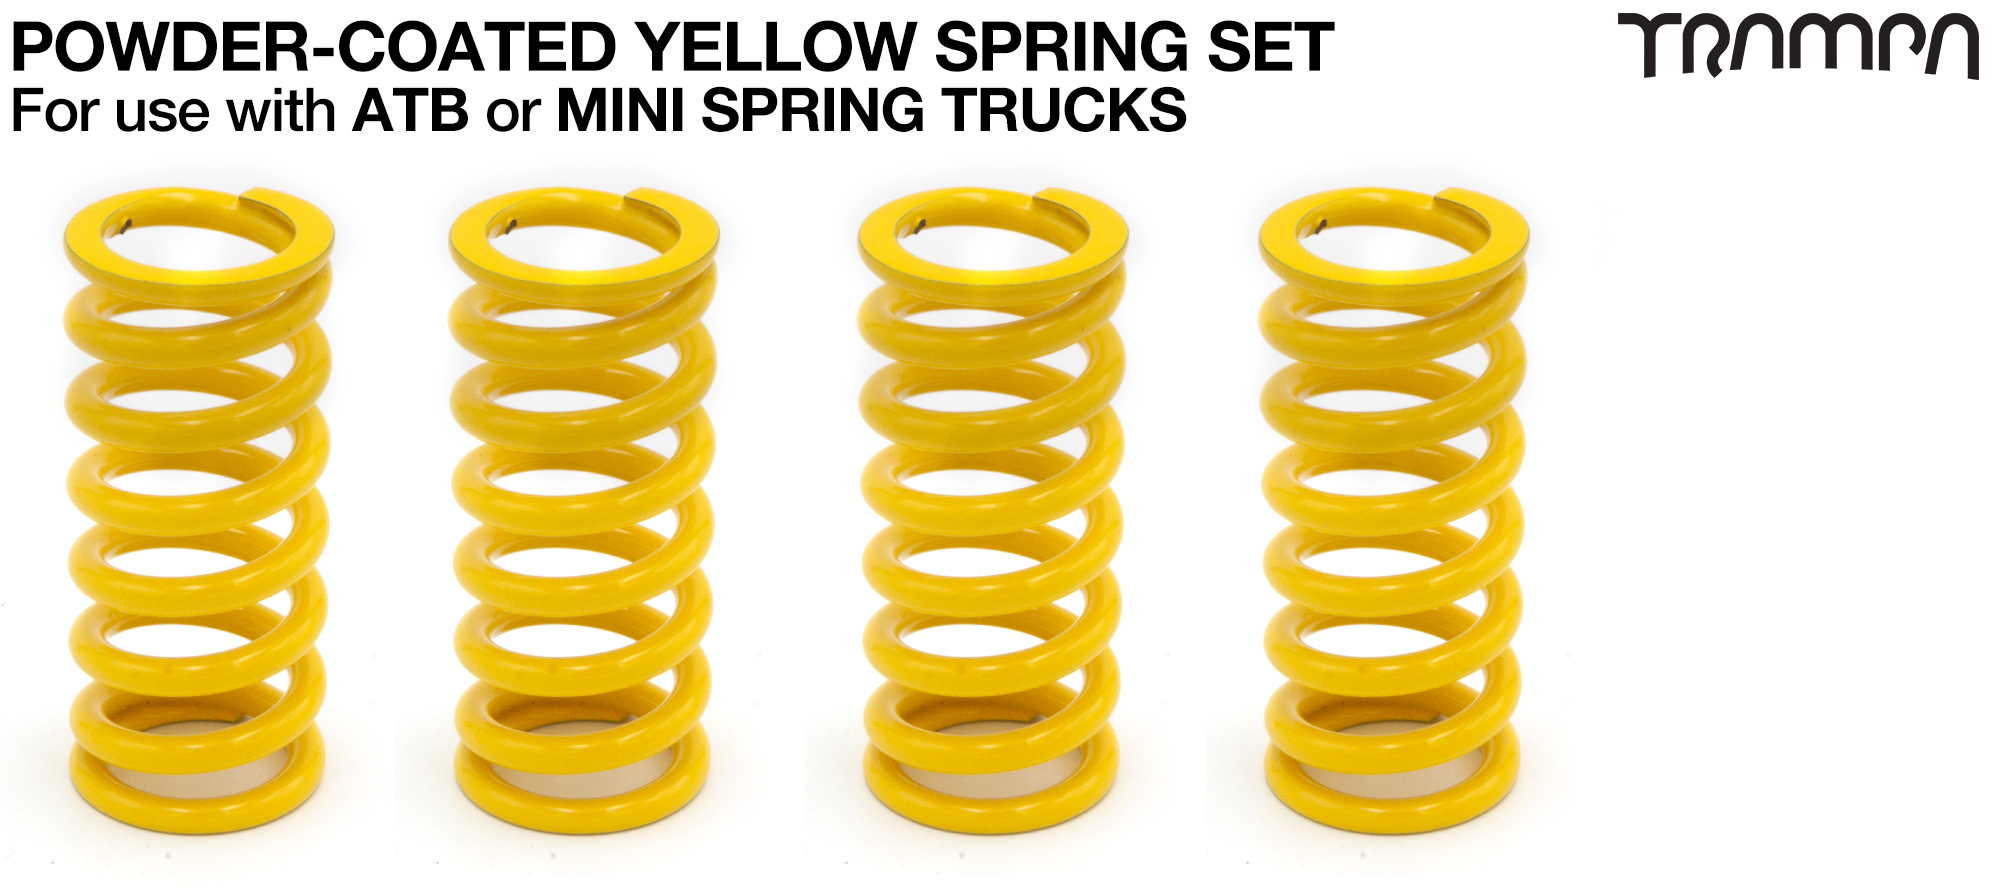 Powder Coated Springs - YELLOW